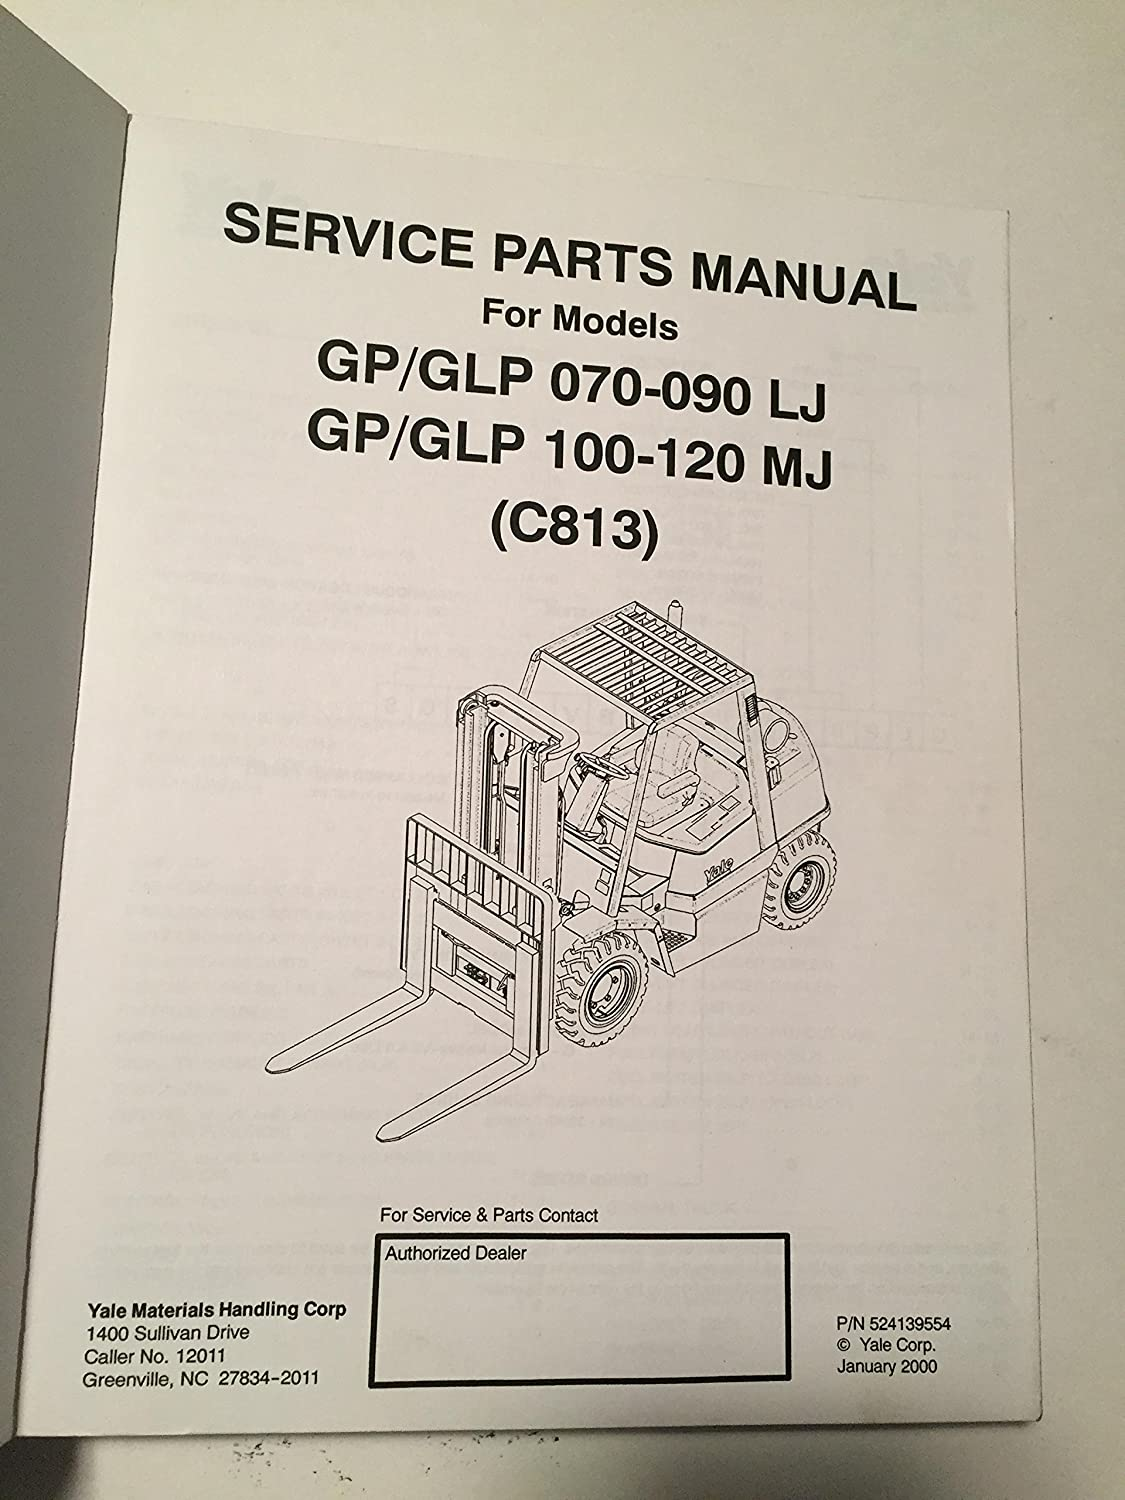 Yale Fork Truck Parts Manual GP GLP 070 080 090 LJ 100 110 120 MJ:  Amazon.com: Industrial & Scientific